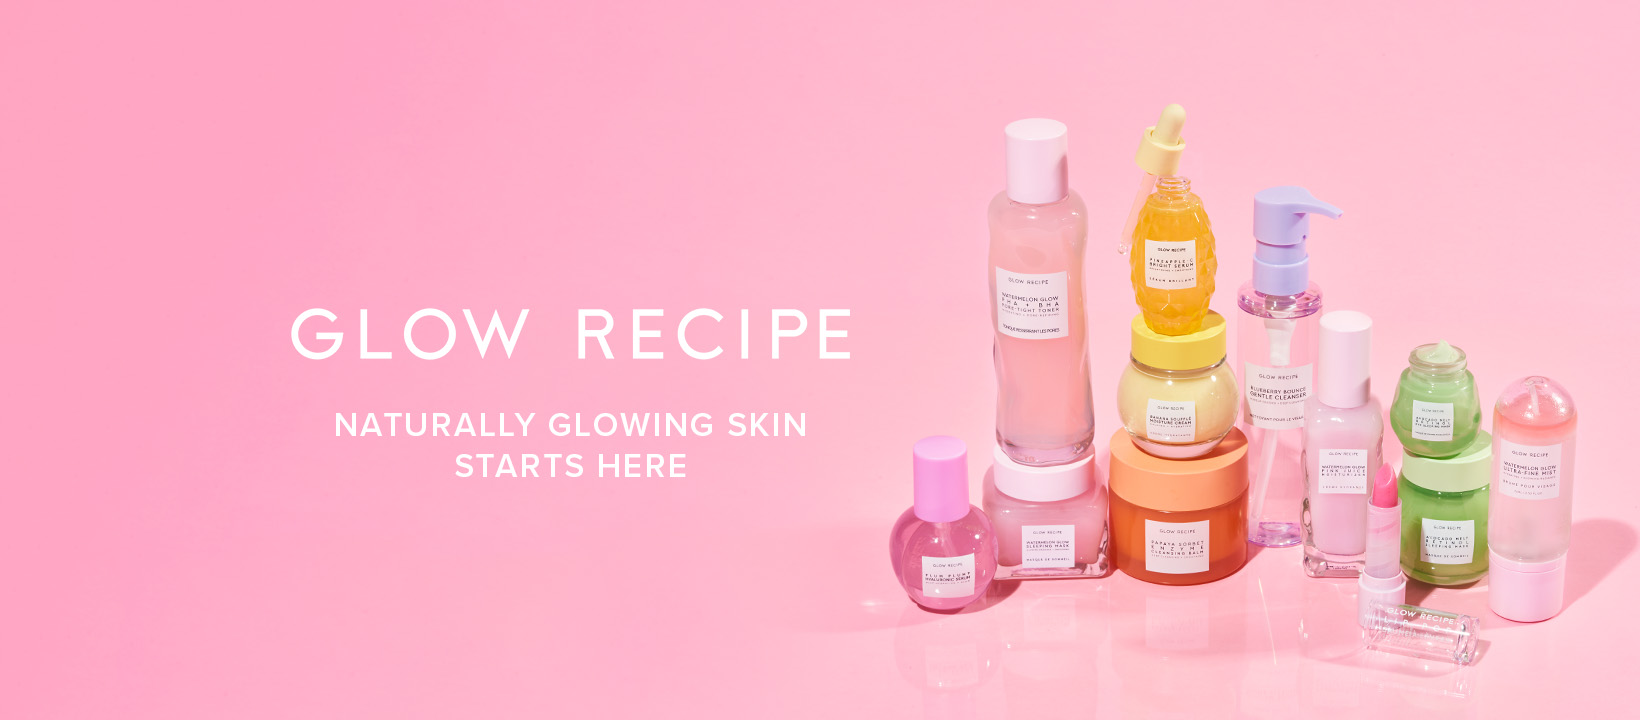 Glow Recipe – fruit-powered skin-care and self-care